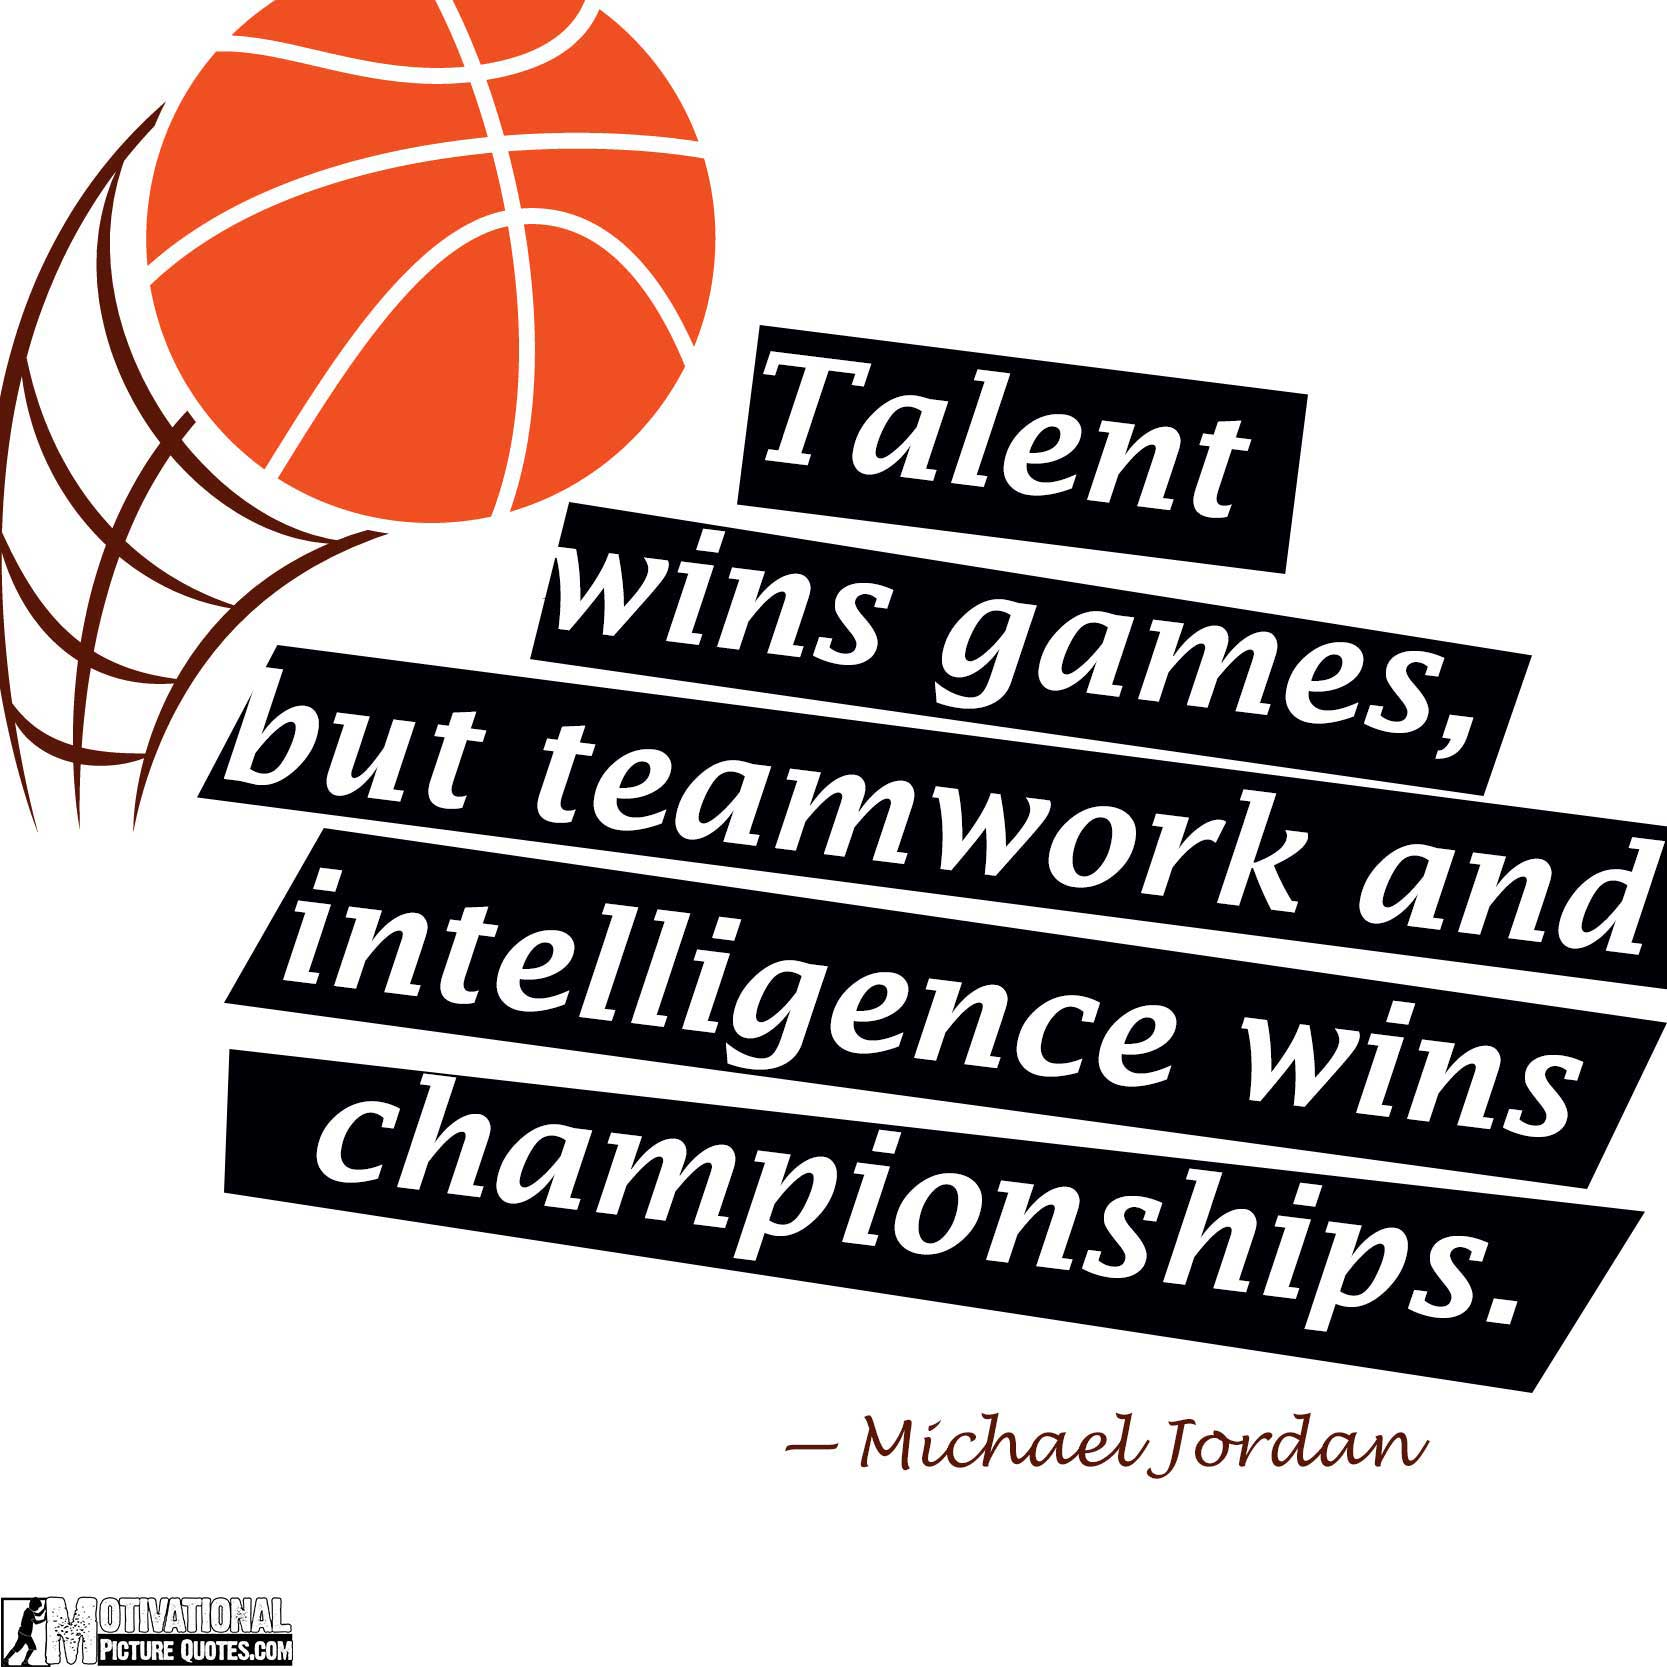 Quotes By Michael Jordan 50 Inspirational Basketball Quotes With Pictures  Insbright